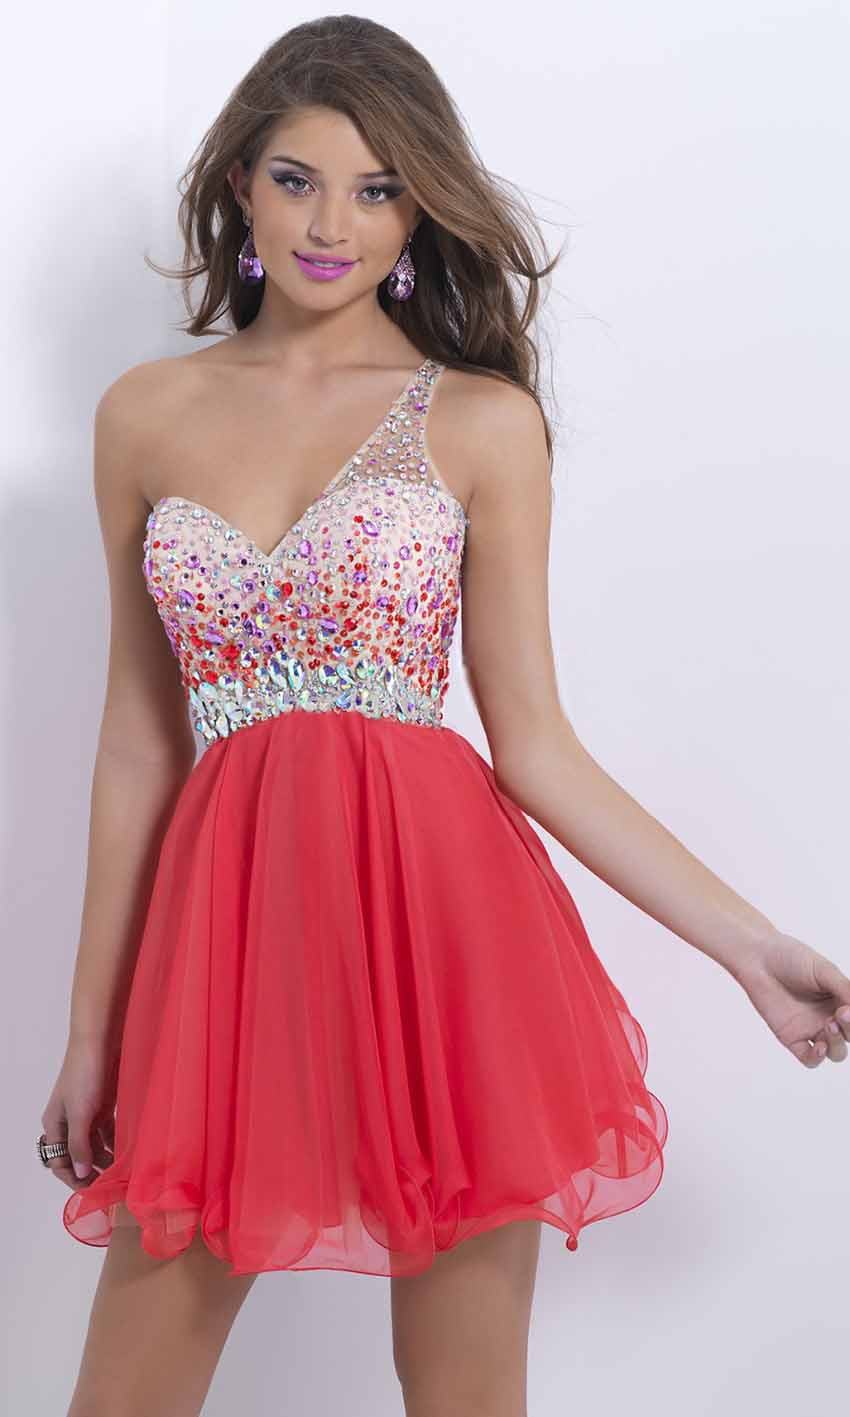 Amazing Rhinestone One Shoulder Short Red Prom Dress UK KSP386 ...